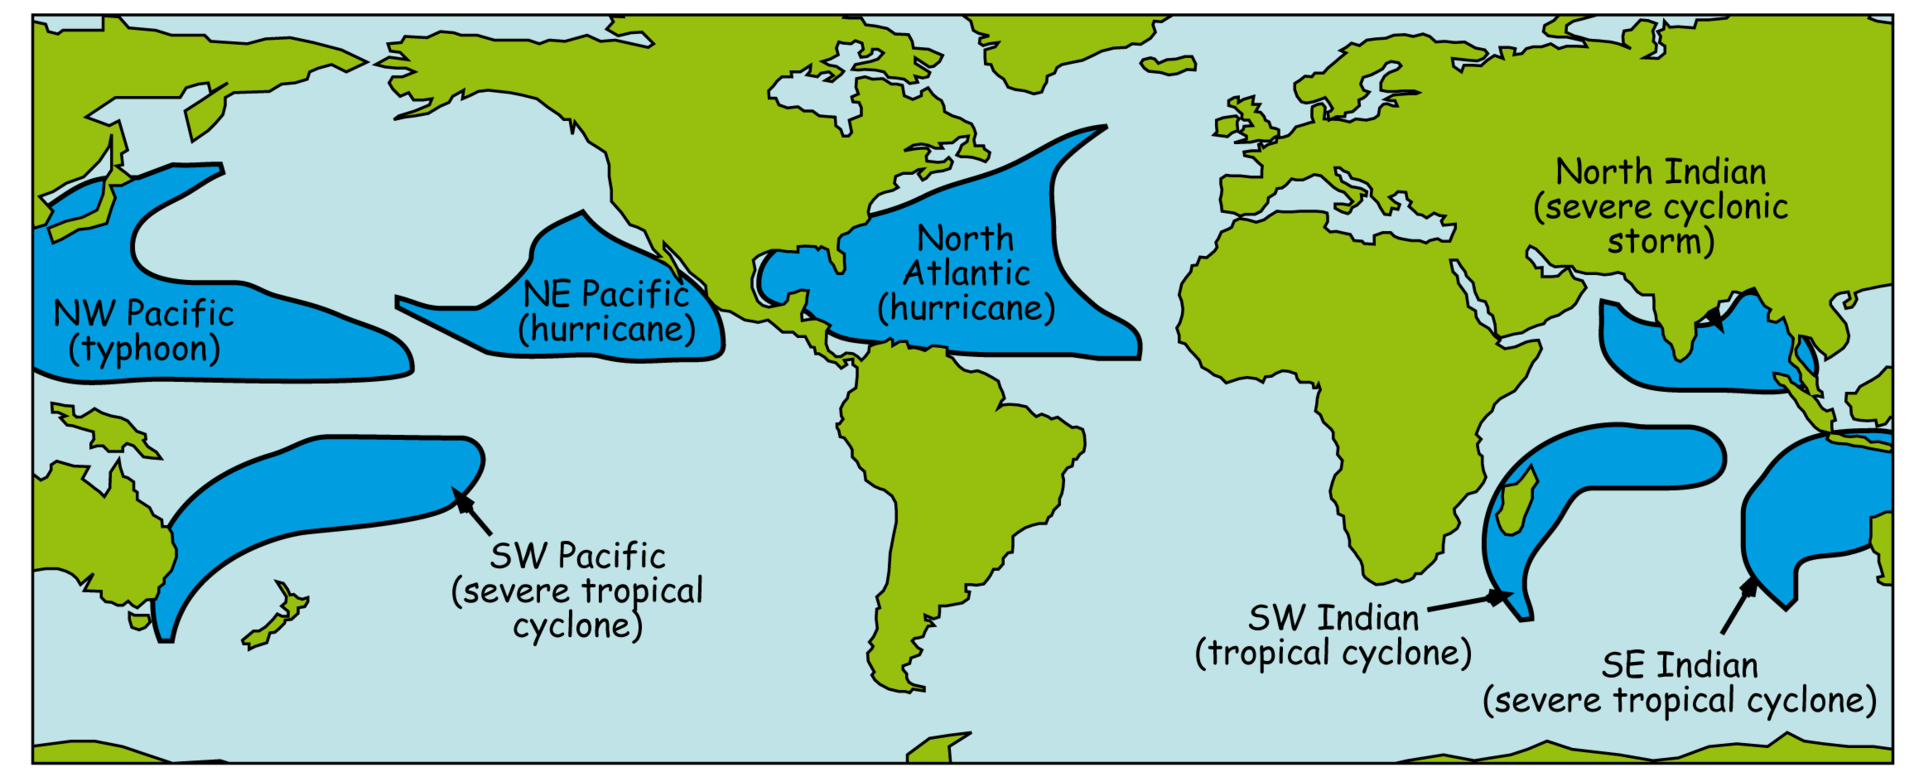 The principle areas where tropical cyclones are found, with the synonym for each area.